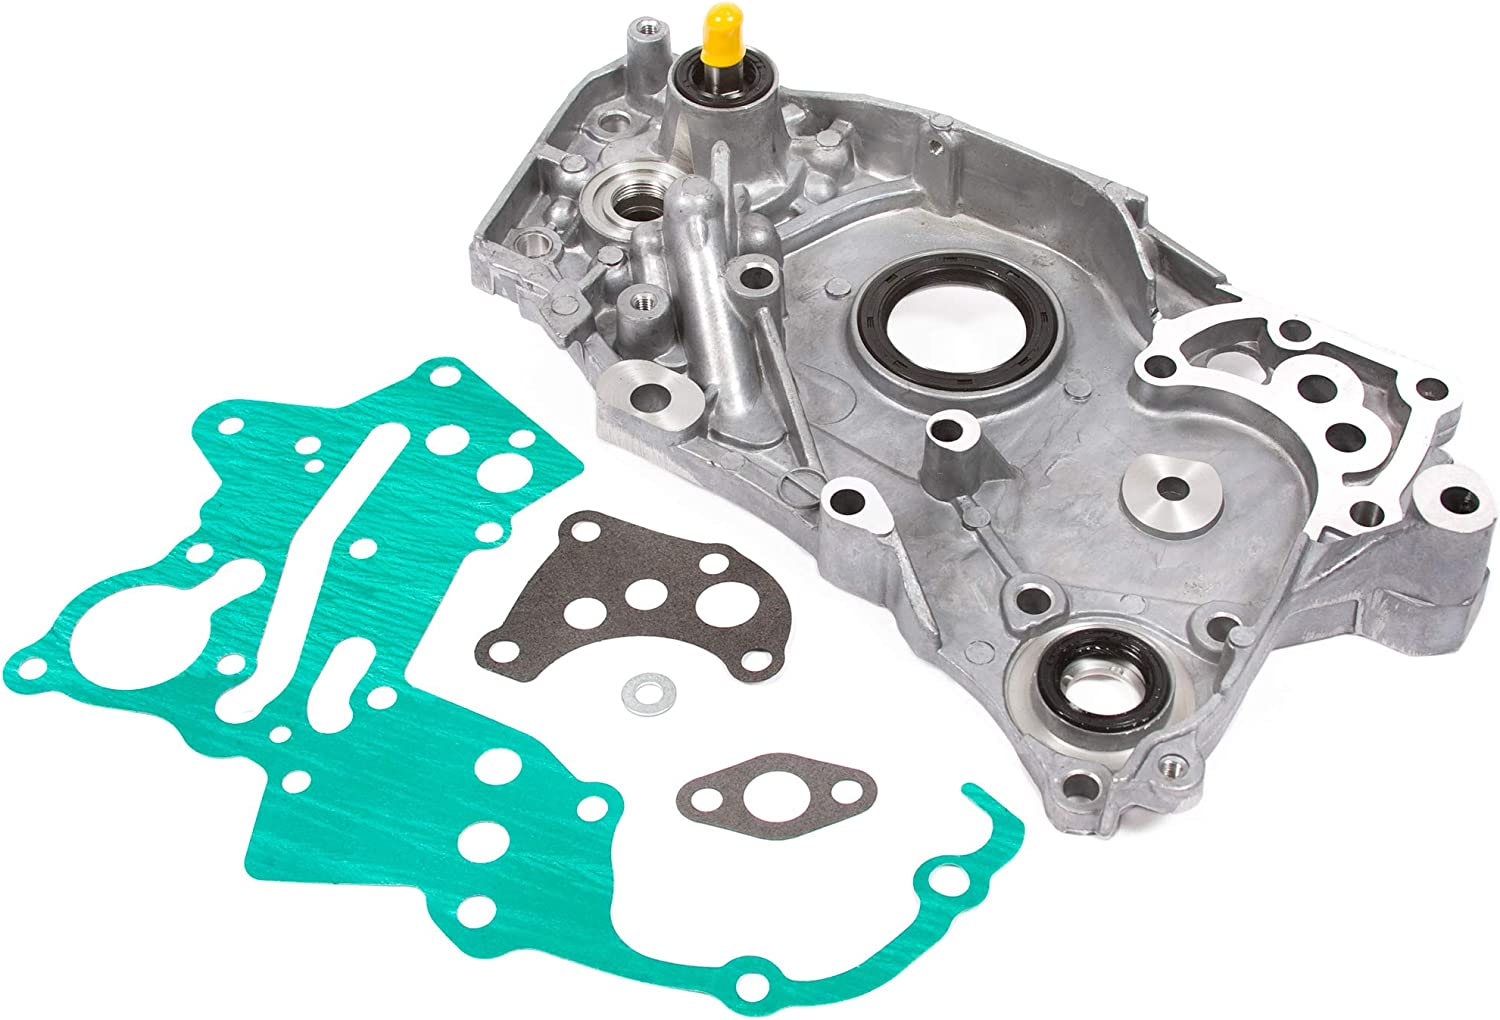 Evergreen OP5005 Fits 89-92 Eagle Hyundai Mitsubishi Plymouth 1.6 1.8 2.0 DOHC 4G63 4G63T Oil Pump